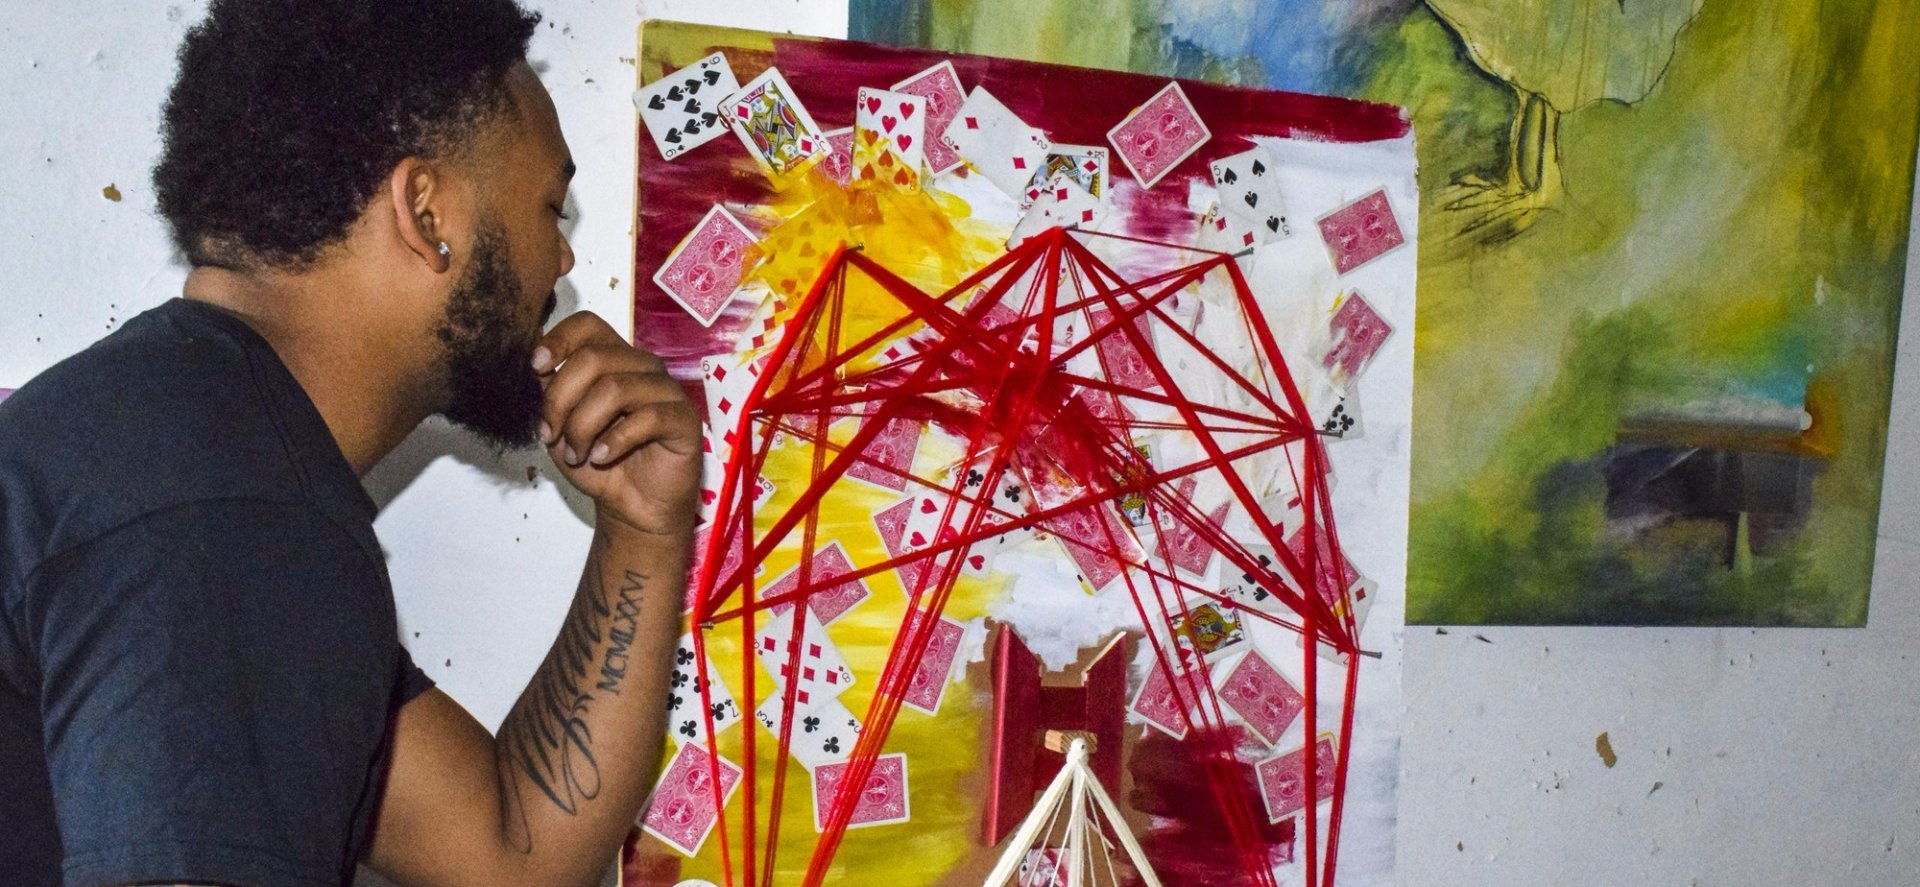 Adonnis Johnson looking deep into his abstract creation of cards and strins. Photo credit: Juan Herrera